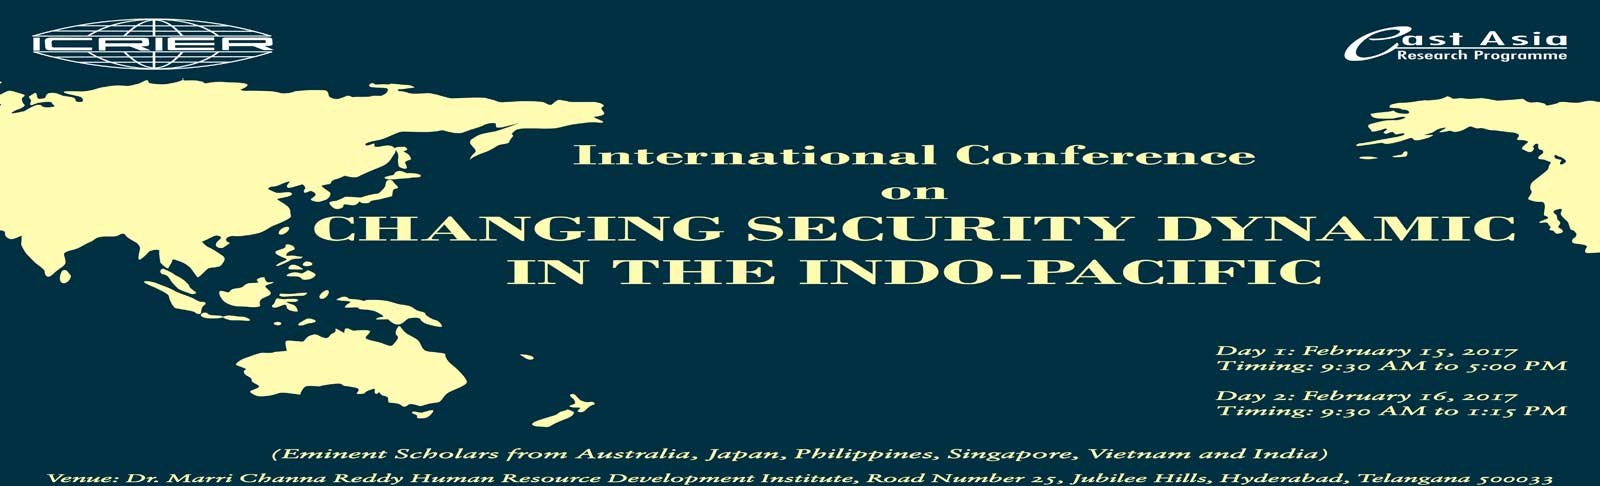 Changing Security Dynamic in the Indo-Pacific